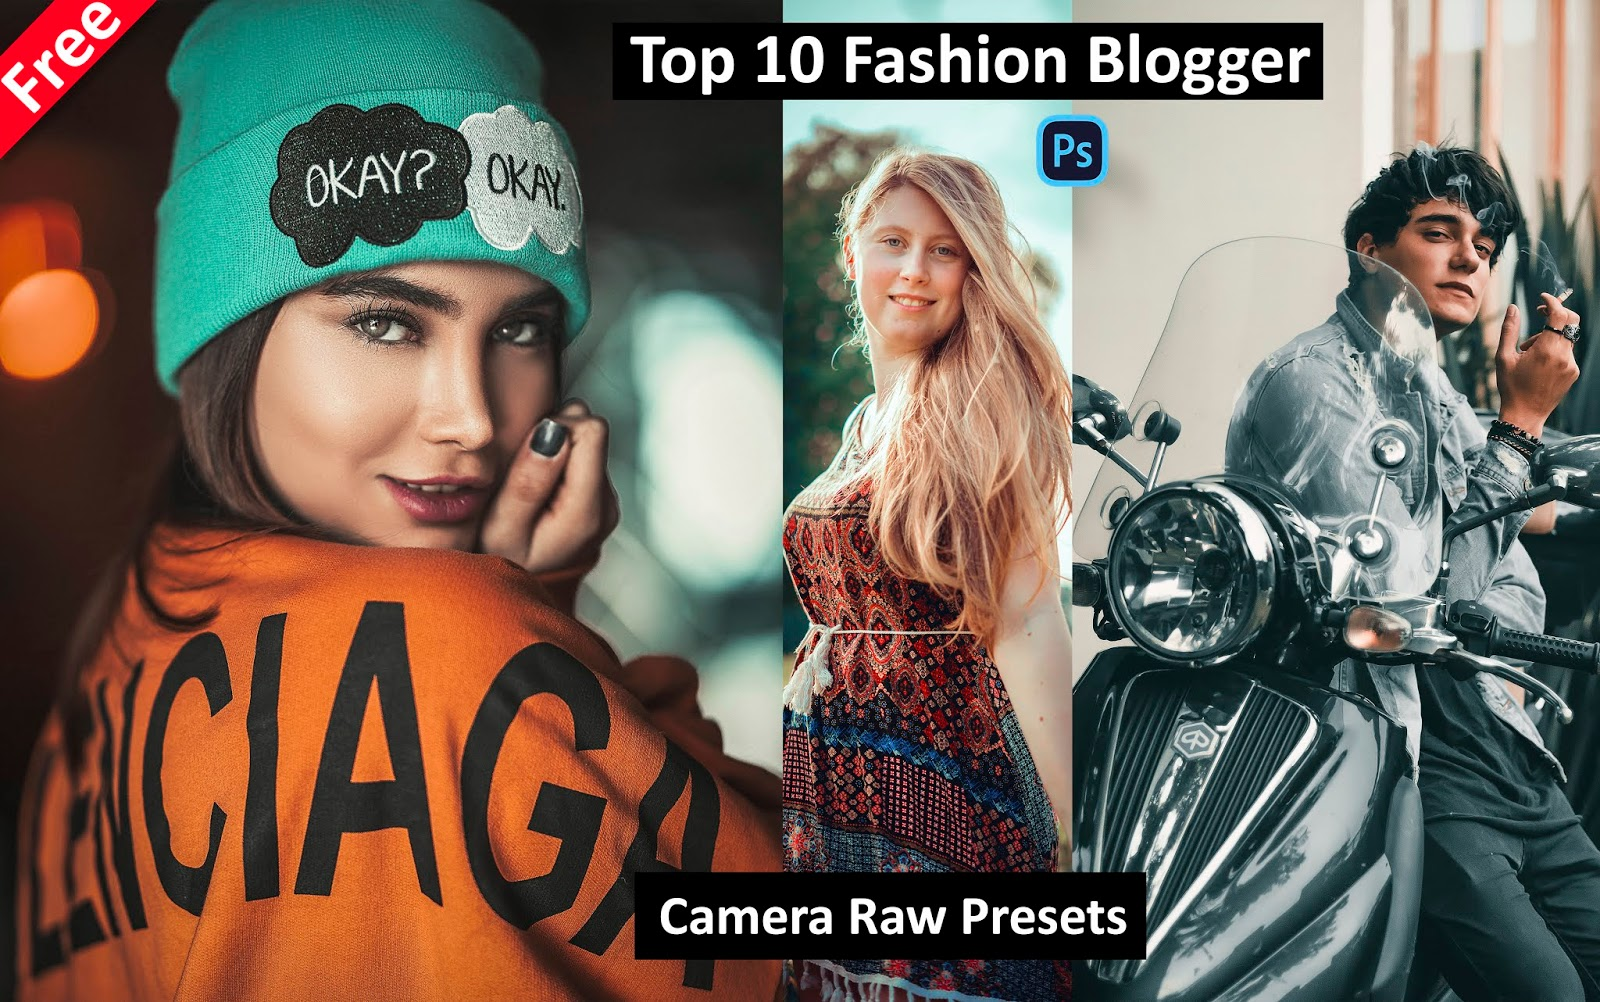 Download Top 10 Fashion Bogger Camera Raw Presets for Free | How to Edit Fashion Portraits in Photoshop